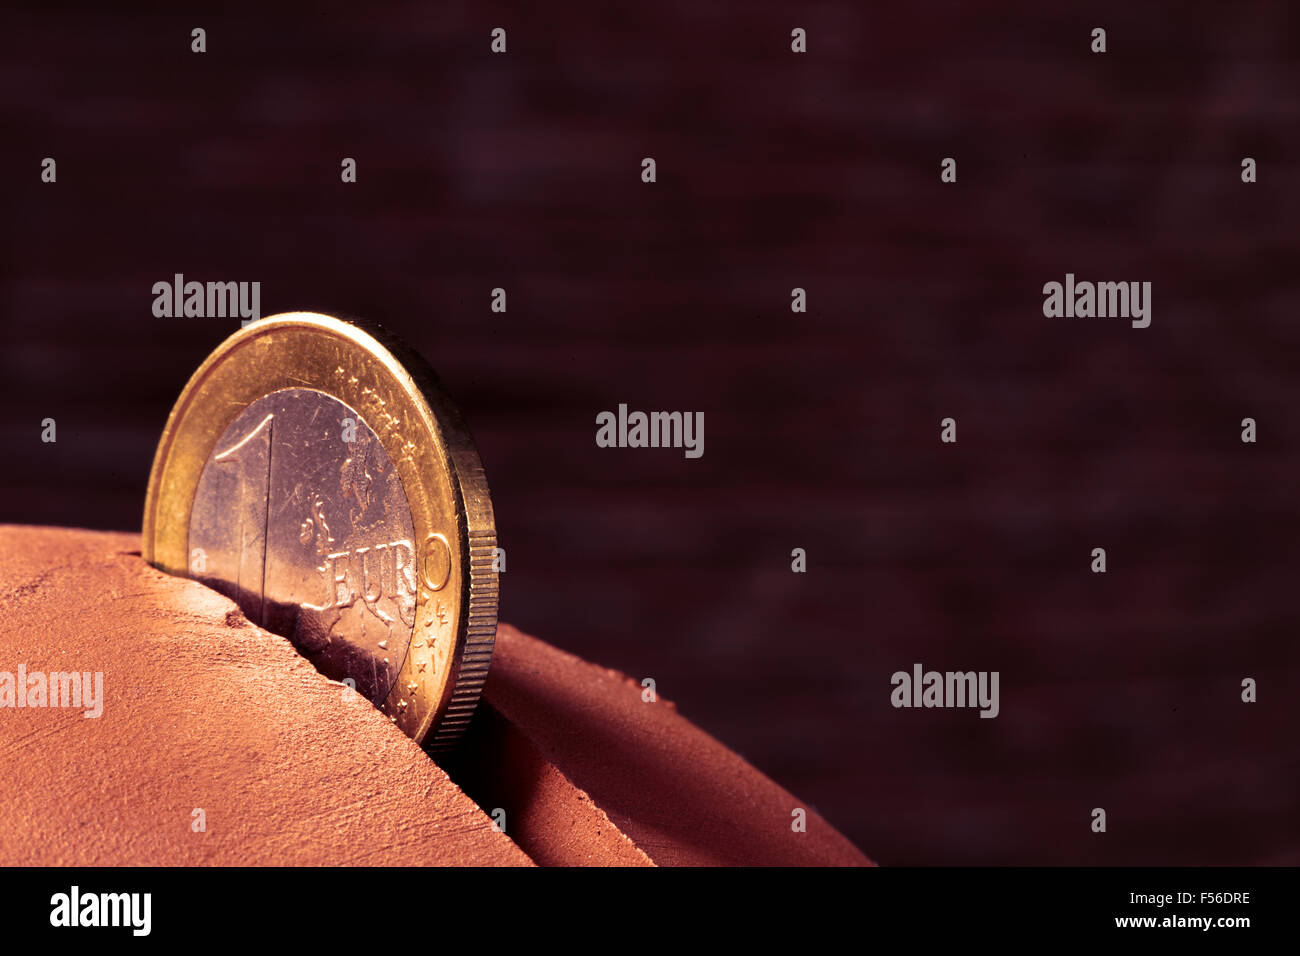 closeup of a coin of one euro in the hole of an earthenware piggy bank - Stock Image